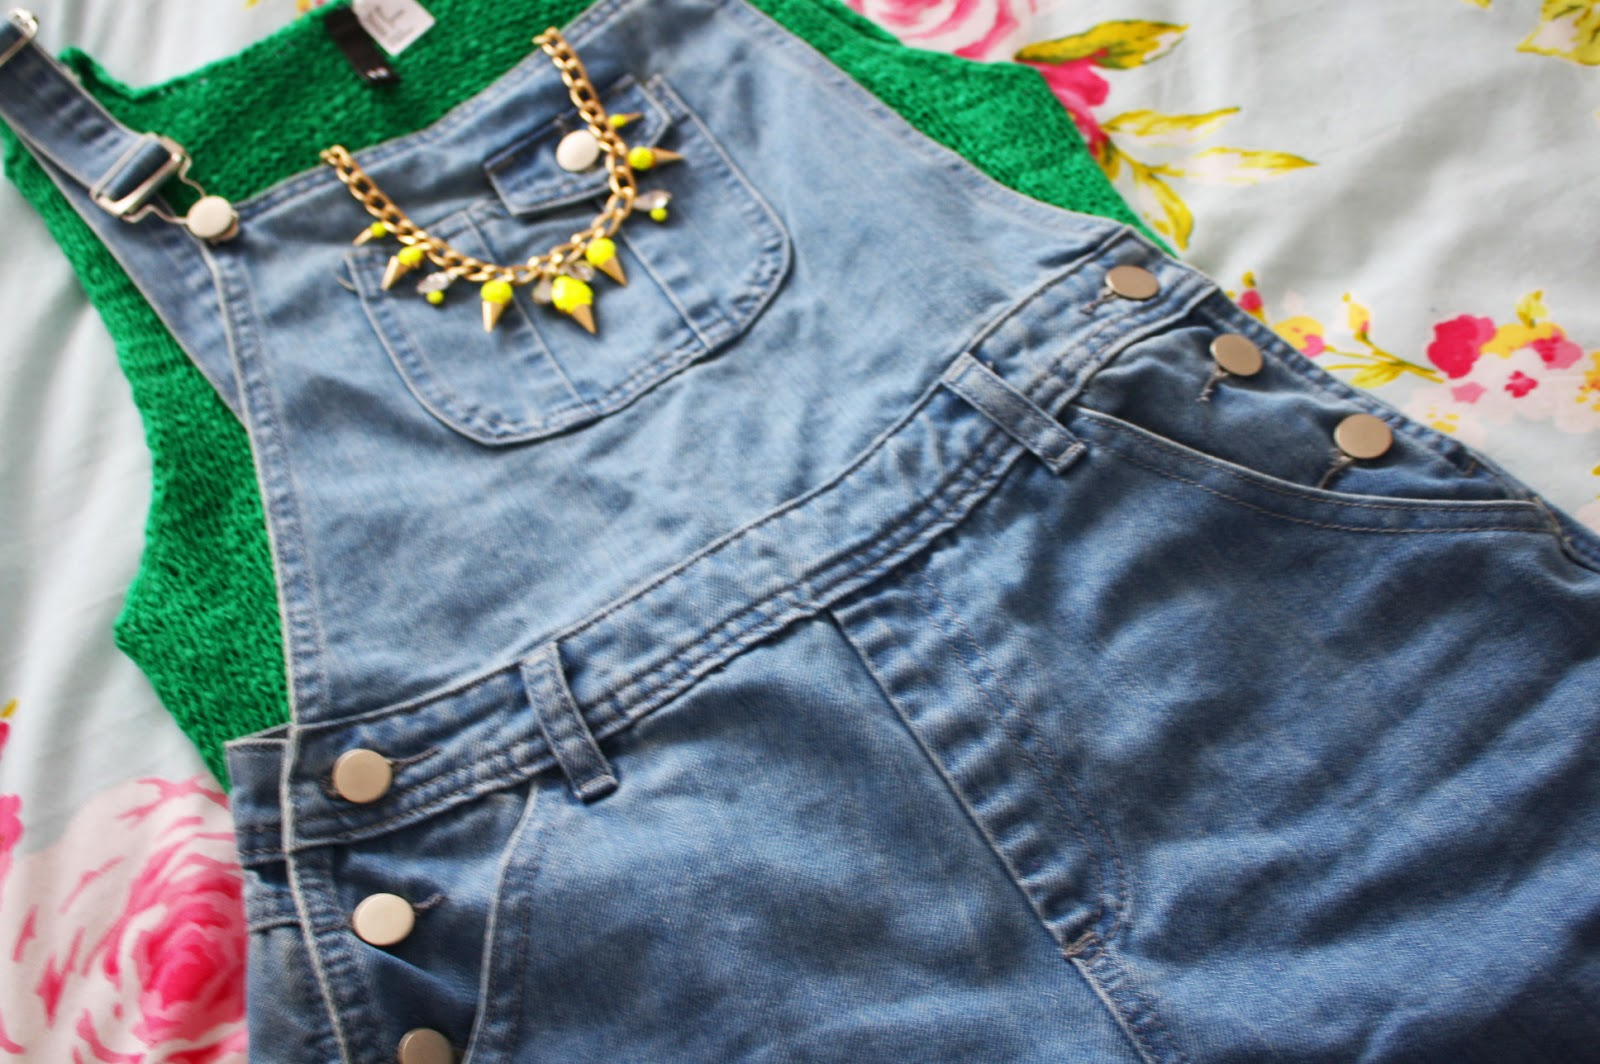 Denim dungarees and knitwear